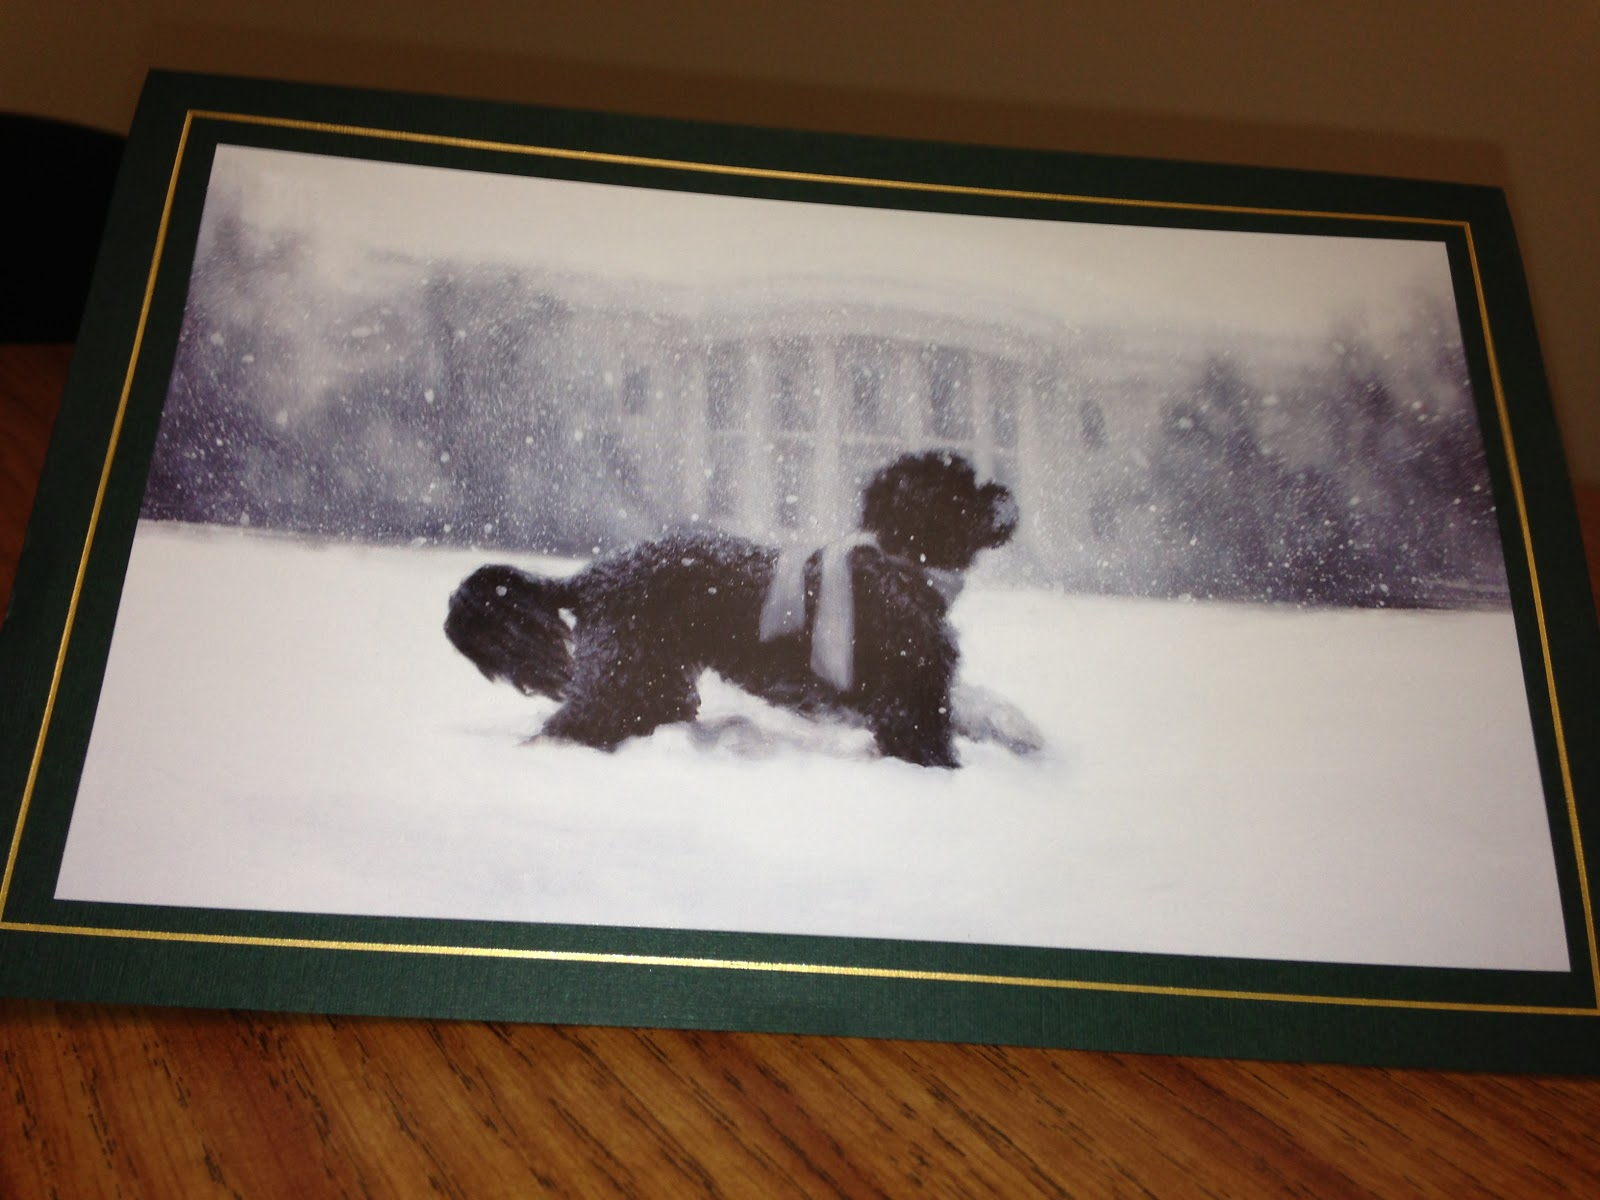 Utah office of health disparities christmas greetings from the christmas greetings from the white house ohd has friends in high places and those friends have a cute dog m4hsunfo Choice Image